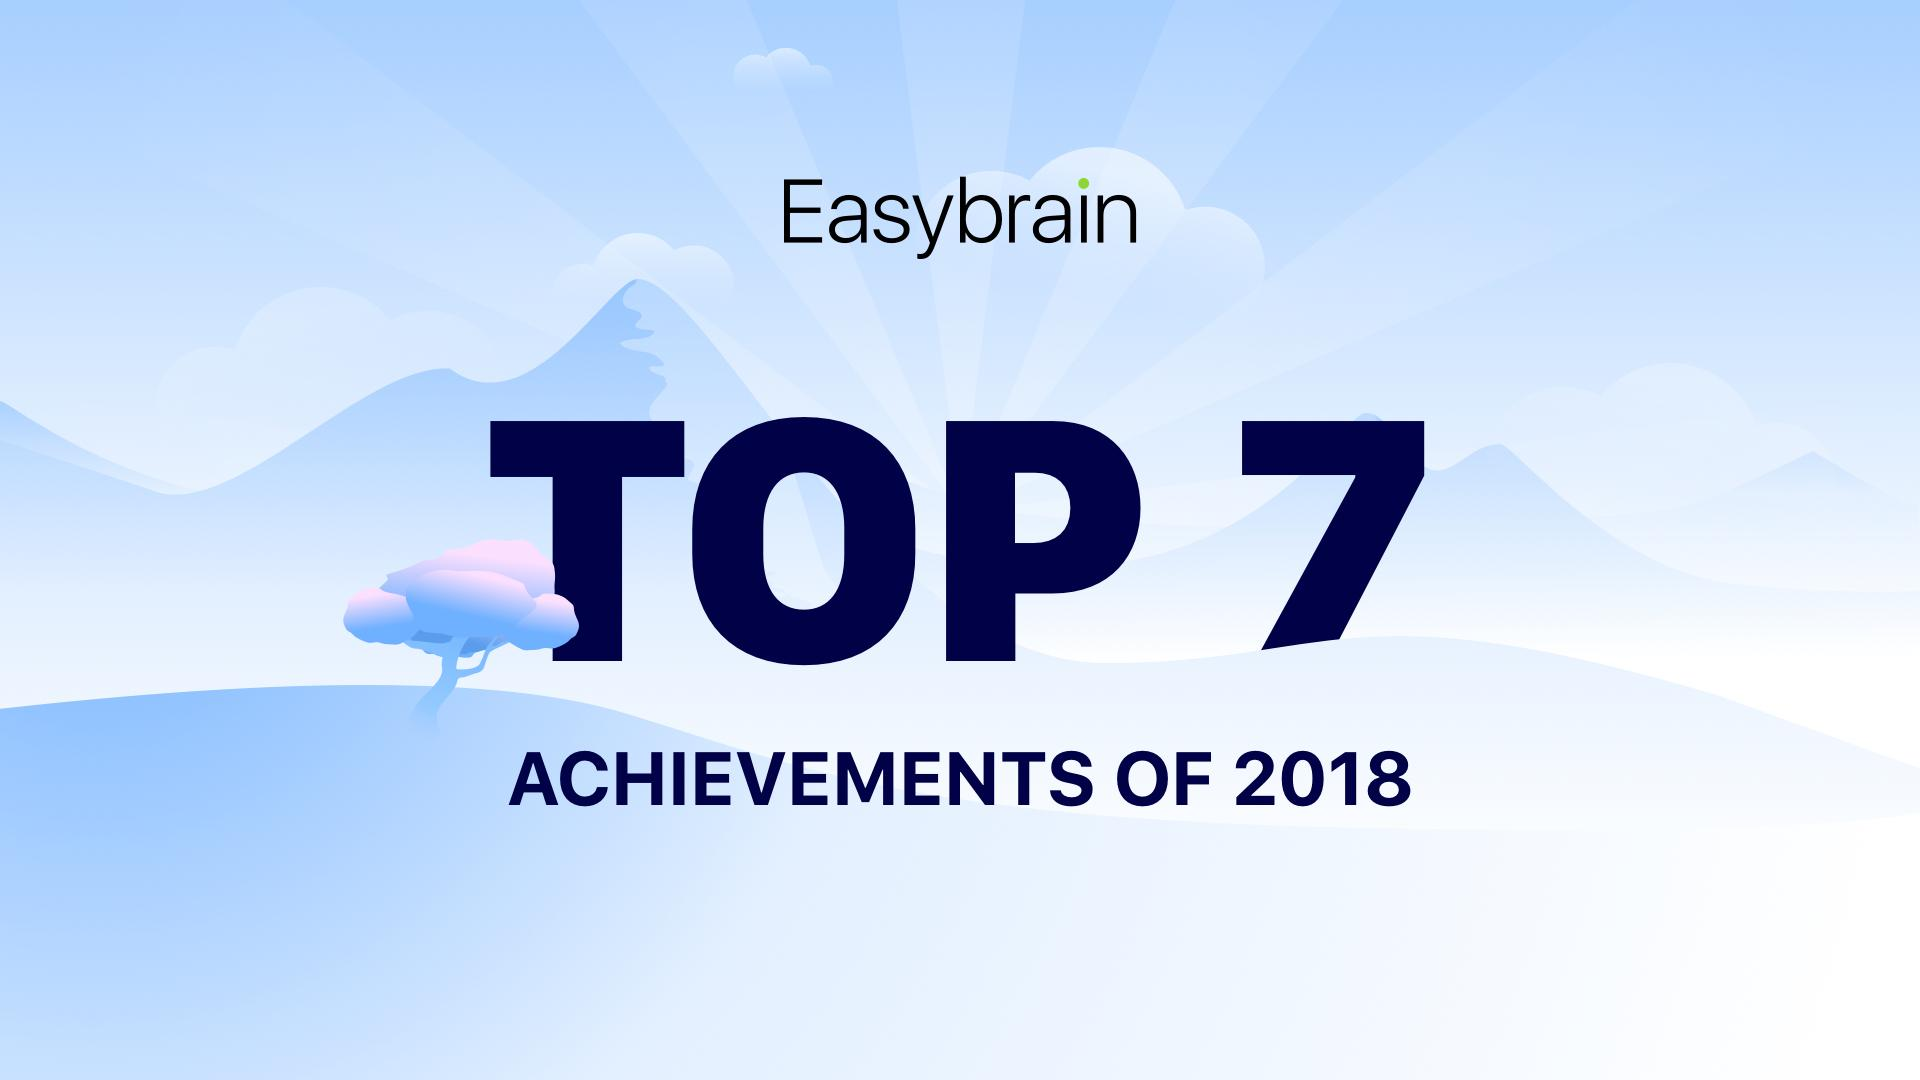 Easybrain achievements of 2018